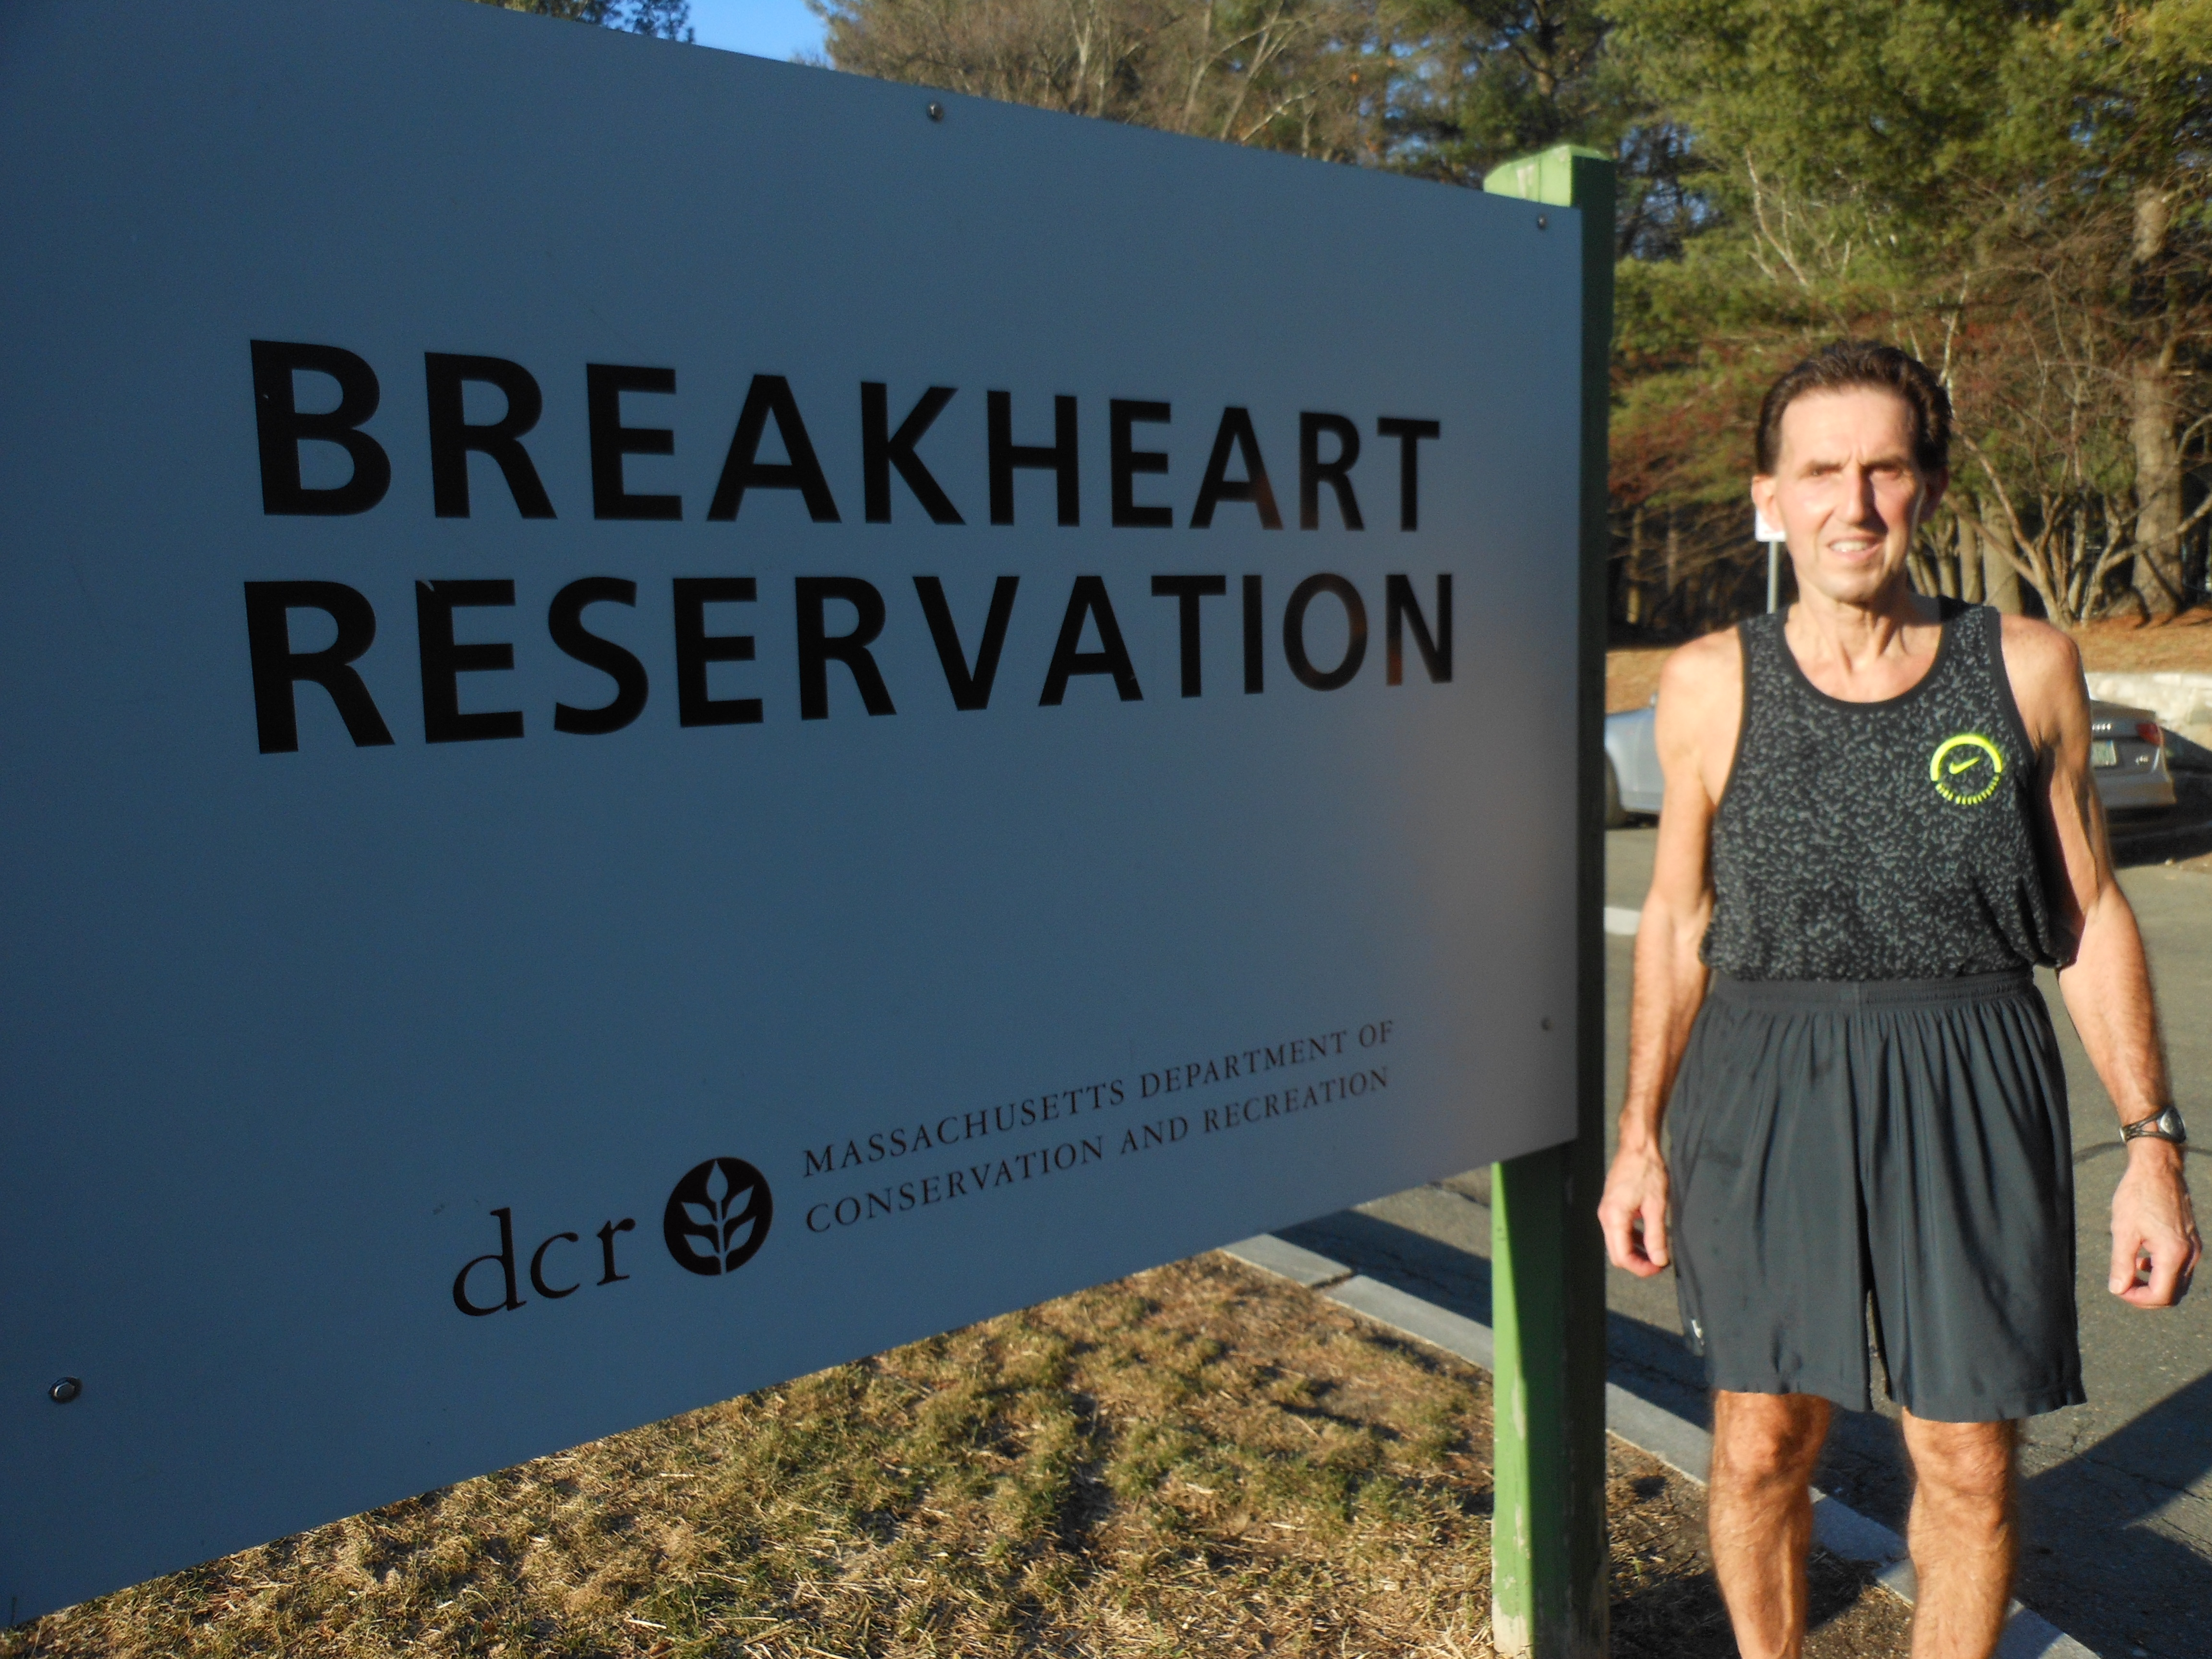 A RARE FEBRUARY RUN: Saugus native Stephen Boudreau says he's been running the trails at Breakheart Reservation for more than half a century, but can't recall consecutive days in February – like this past Tuesday and Wednesday – when unseasonably warm weather gave him the pleasure of an outdoor run when he'd normally be doing his daily workout inside, at the gymnasium or on the basketball court. (Saugus Advocate Photos by Mark E. Vogler)